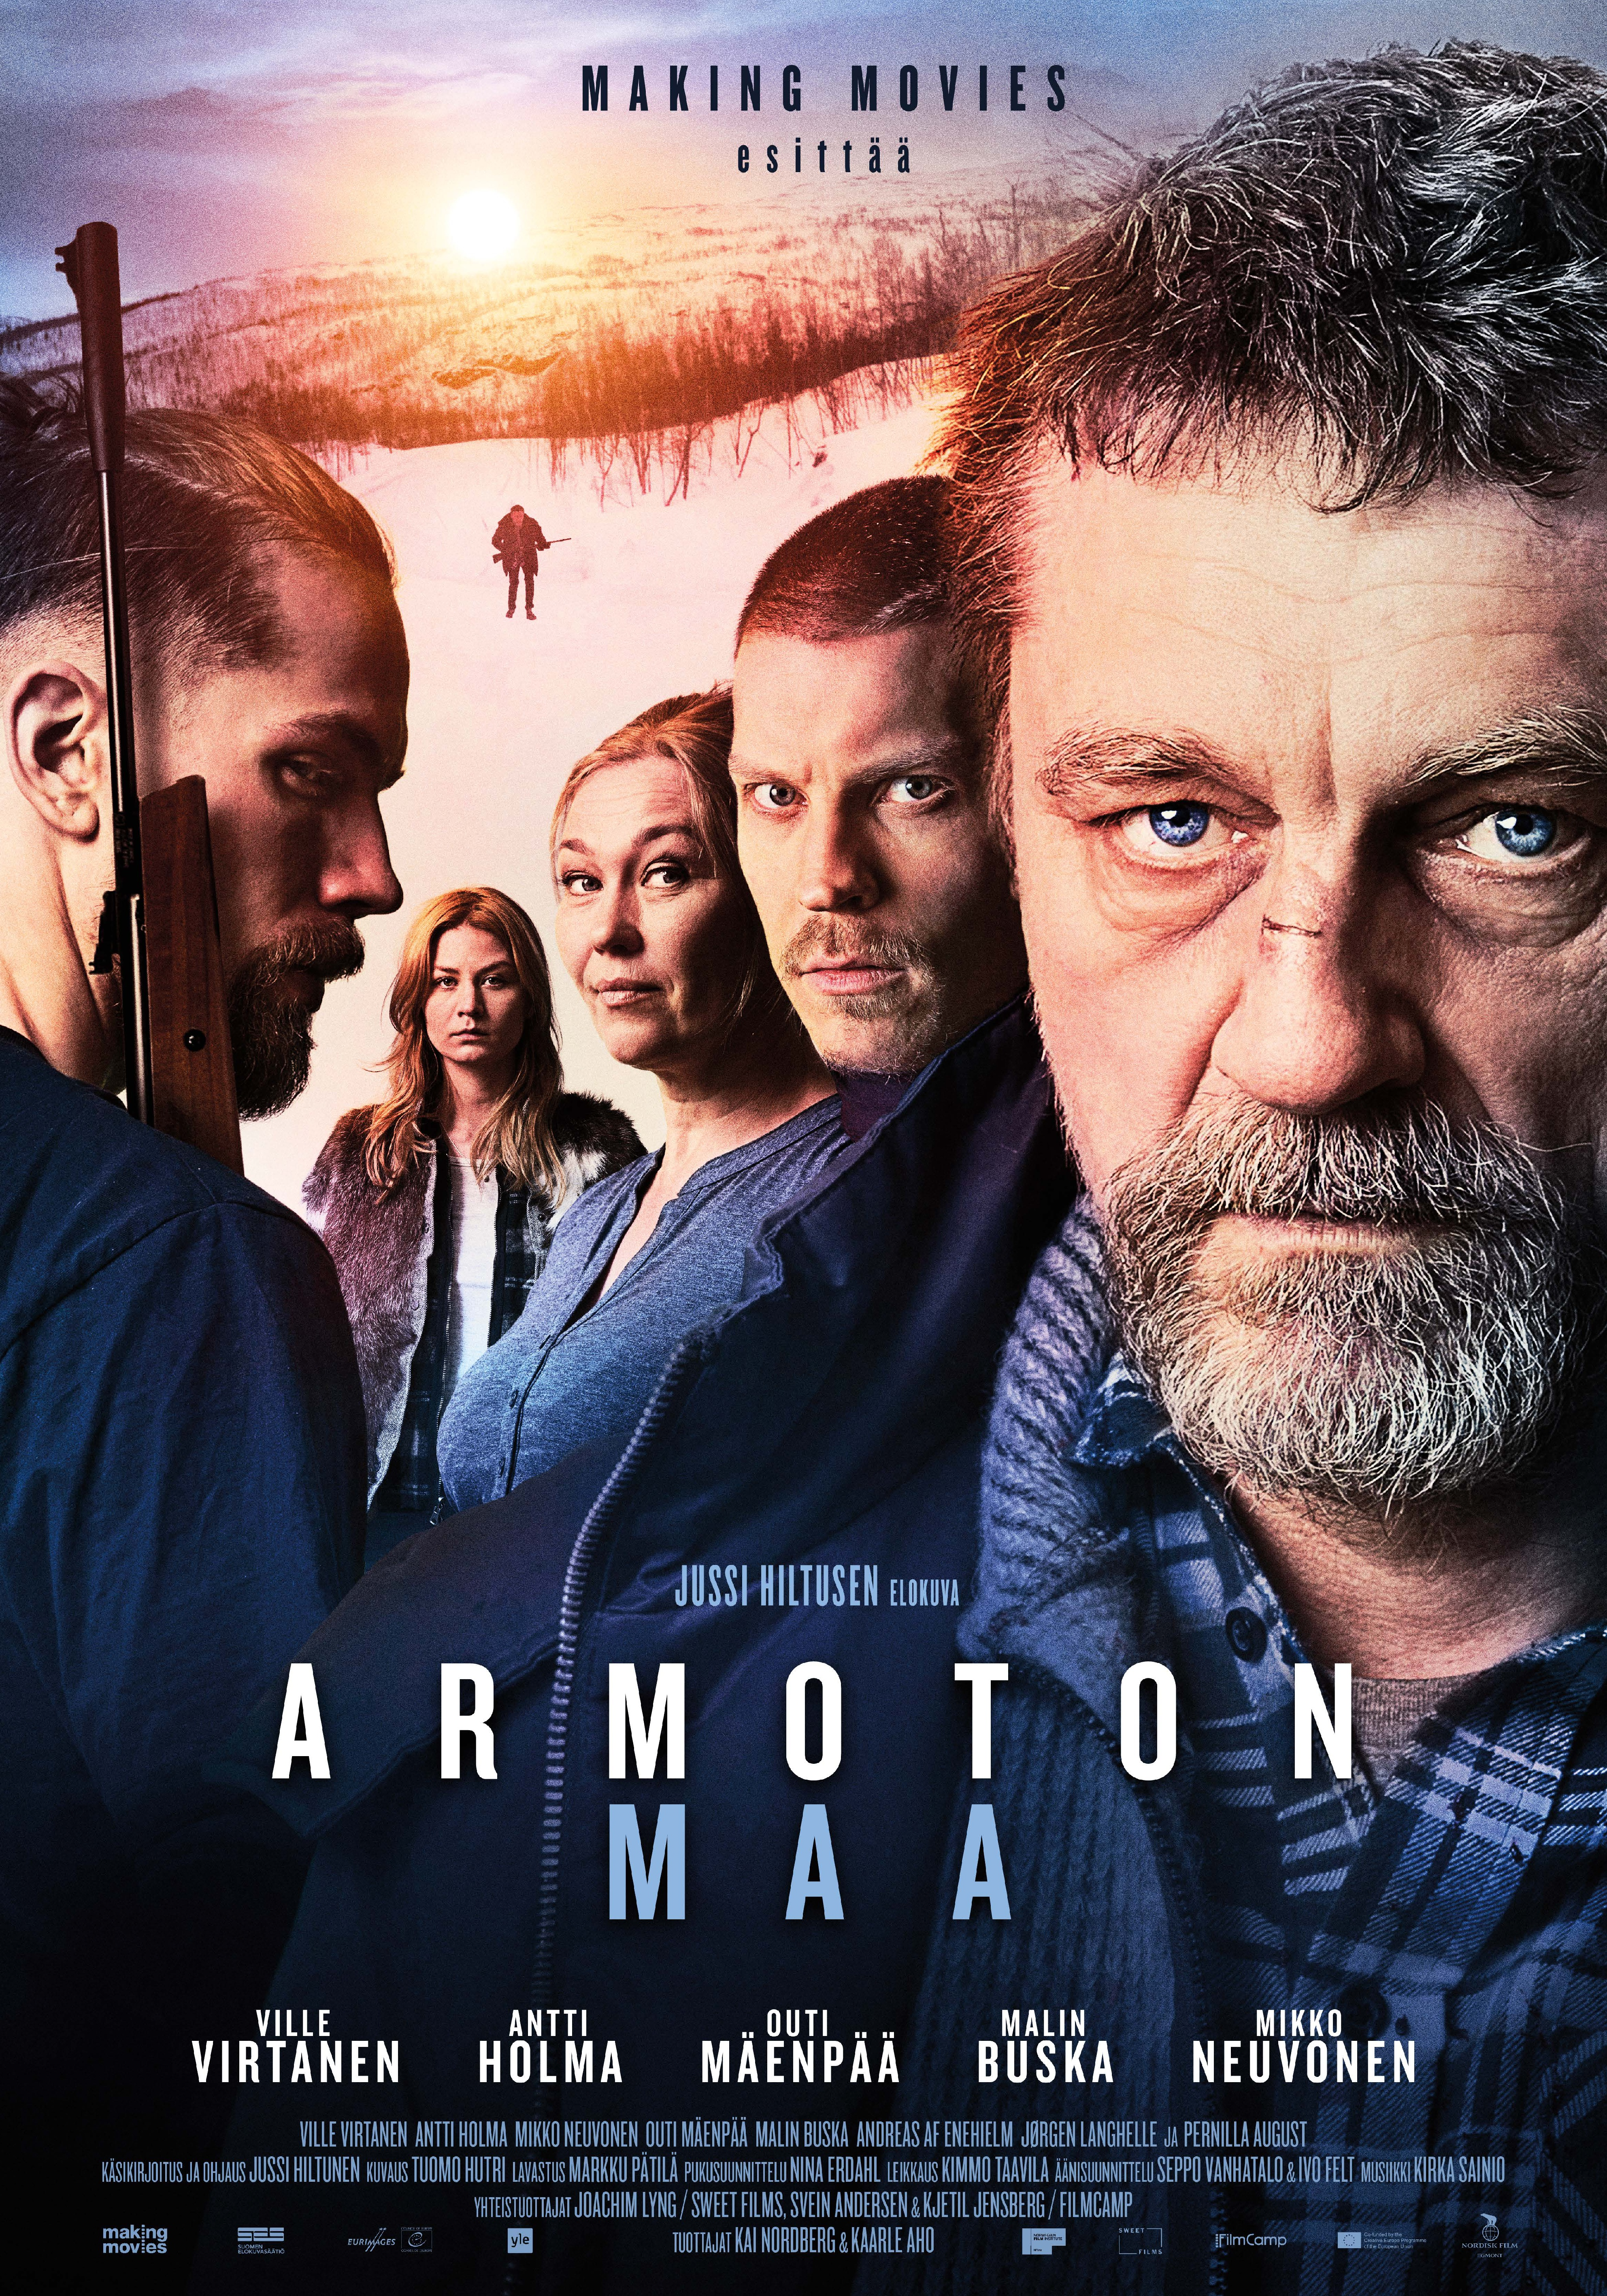 image Armoton maa Watch Full Movie Free Online